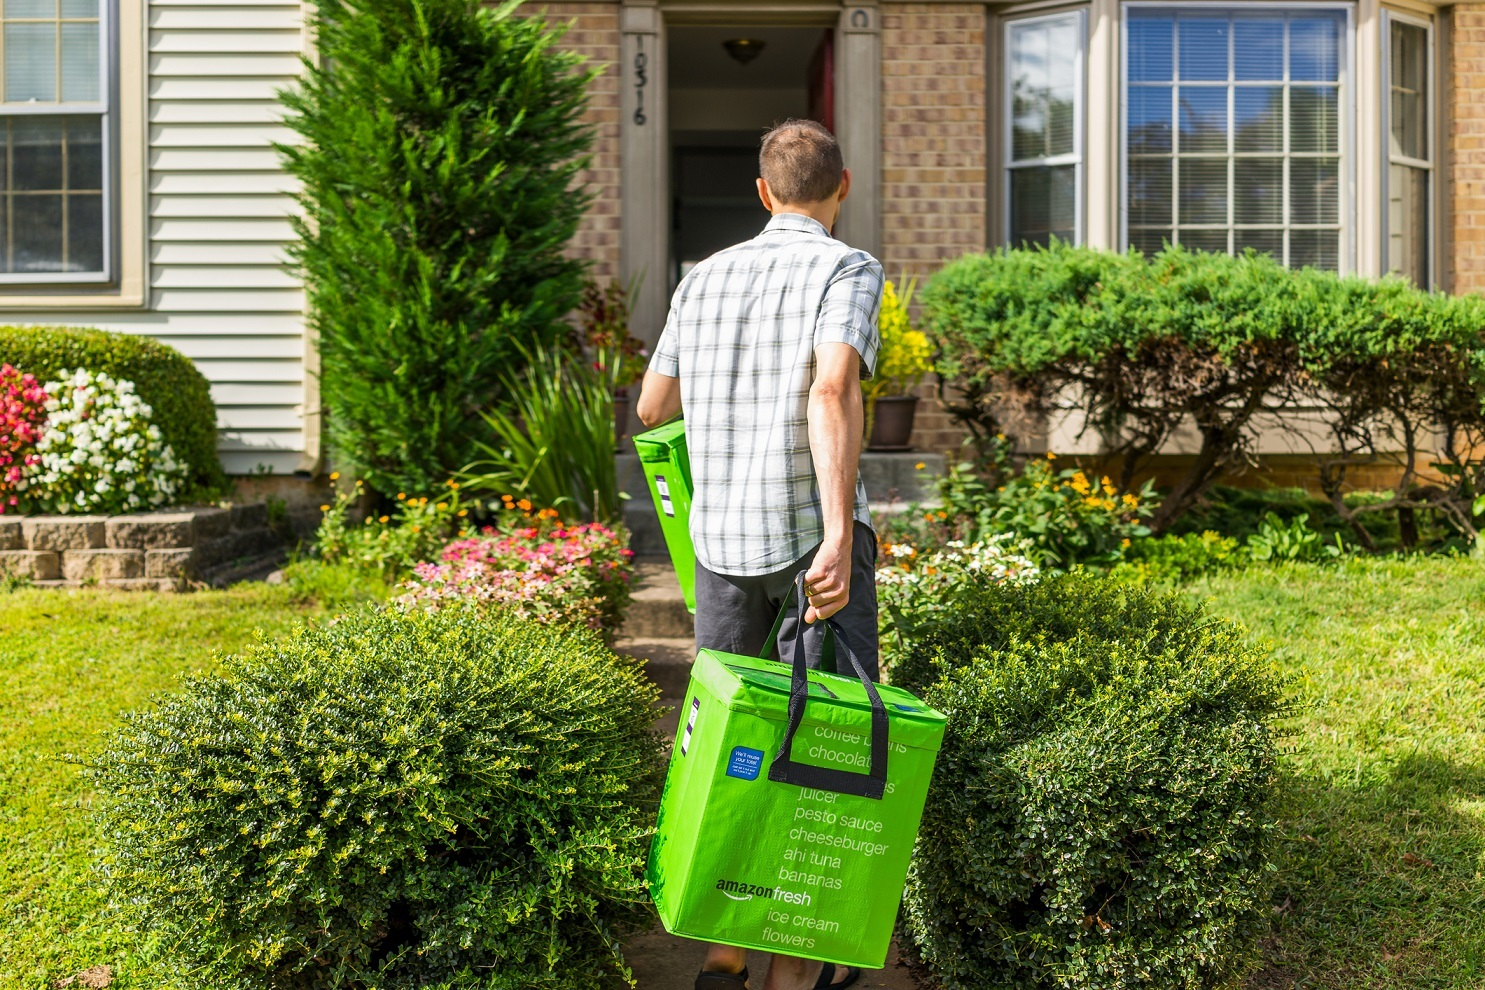 Amazon Fresh insulated grocery delivery bags totes on front home house porch closeup with man carrying